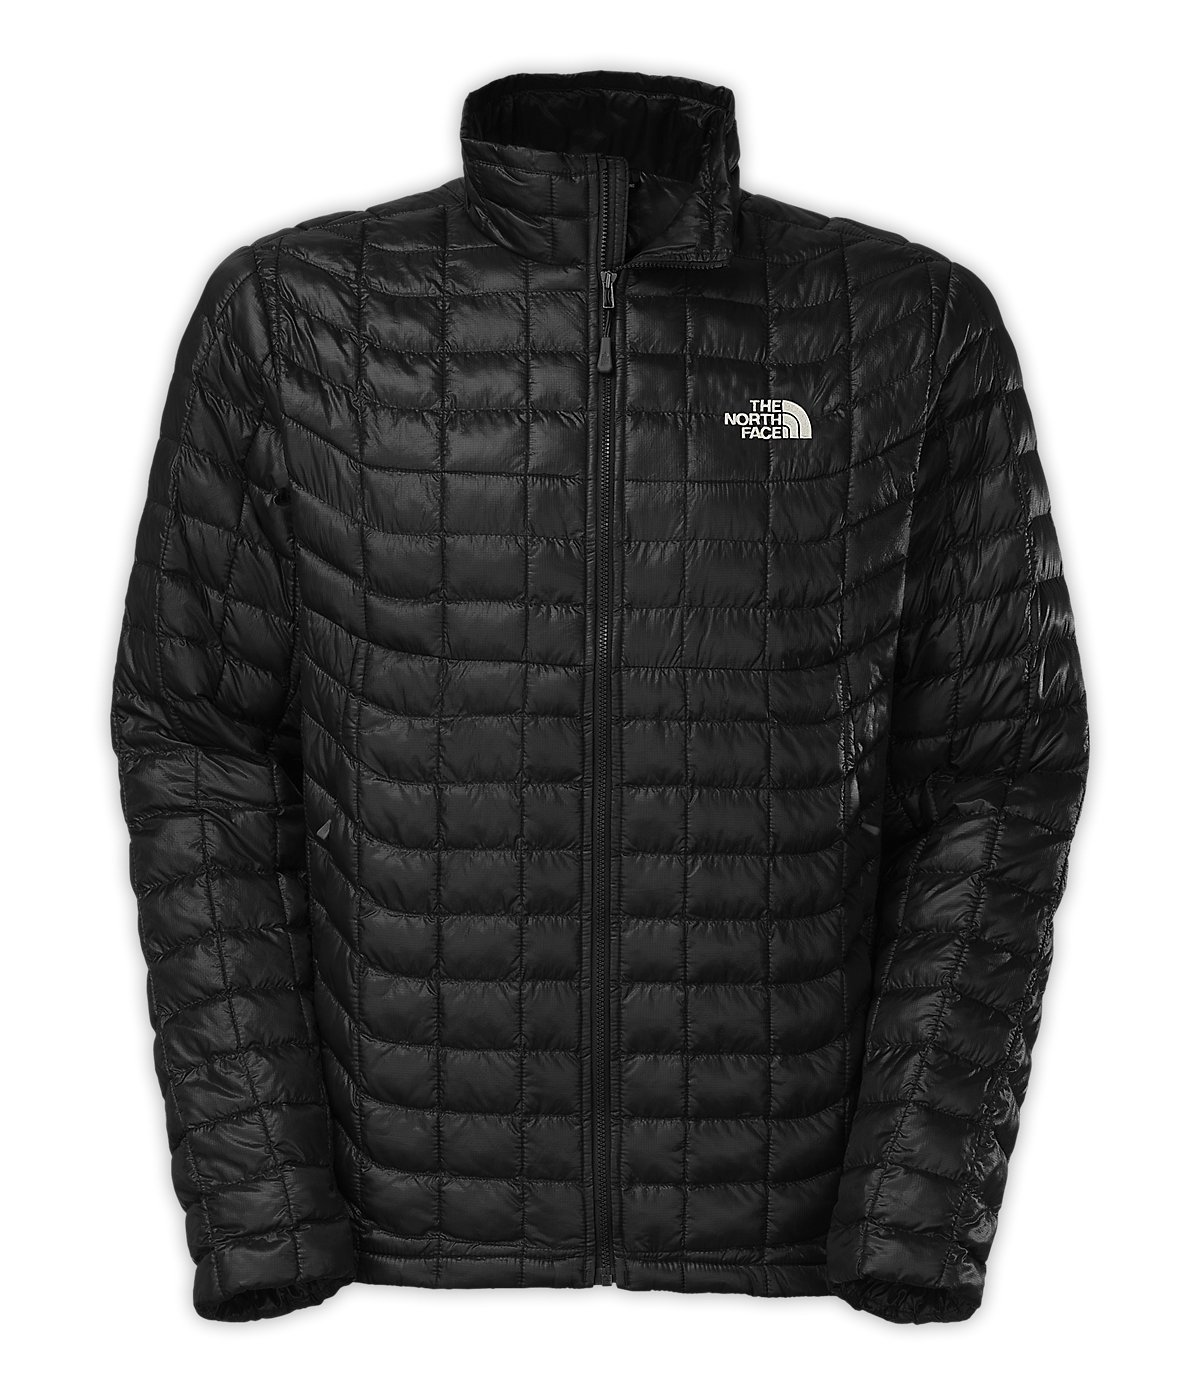 f4ebb6e3d The North Face Men's Thermoball Full Zip Jacket, TNF Black 2 2XL